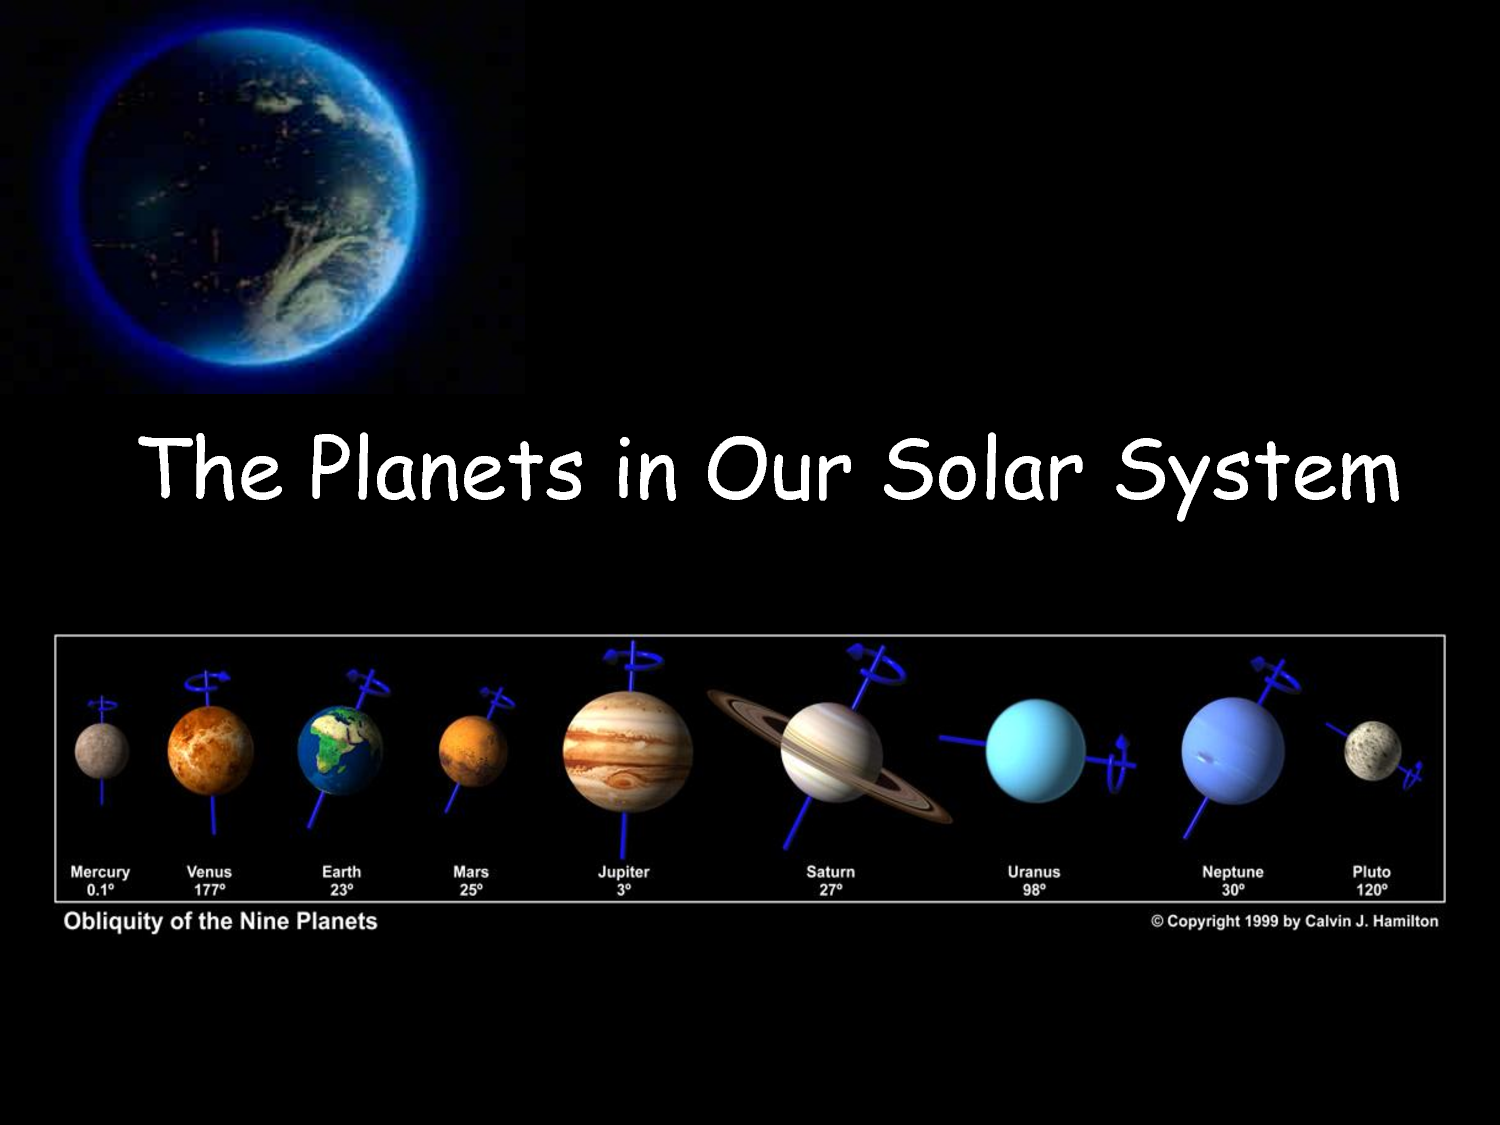 All the Planets in the Solar System | The Planets in Our ...